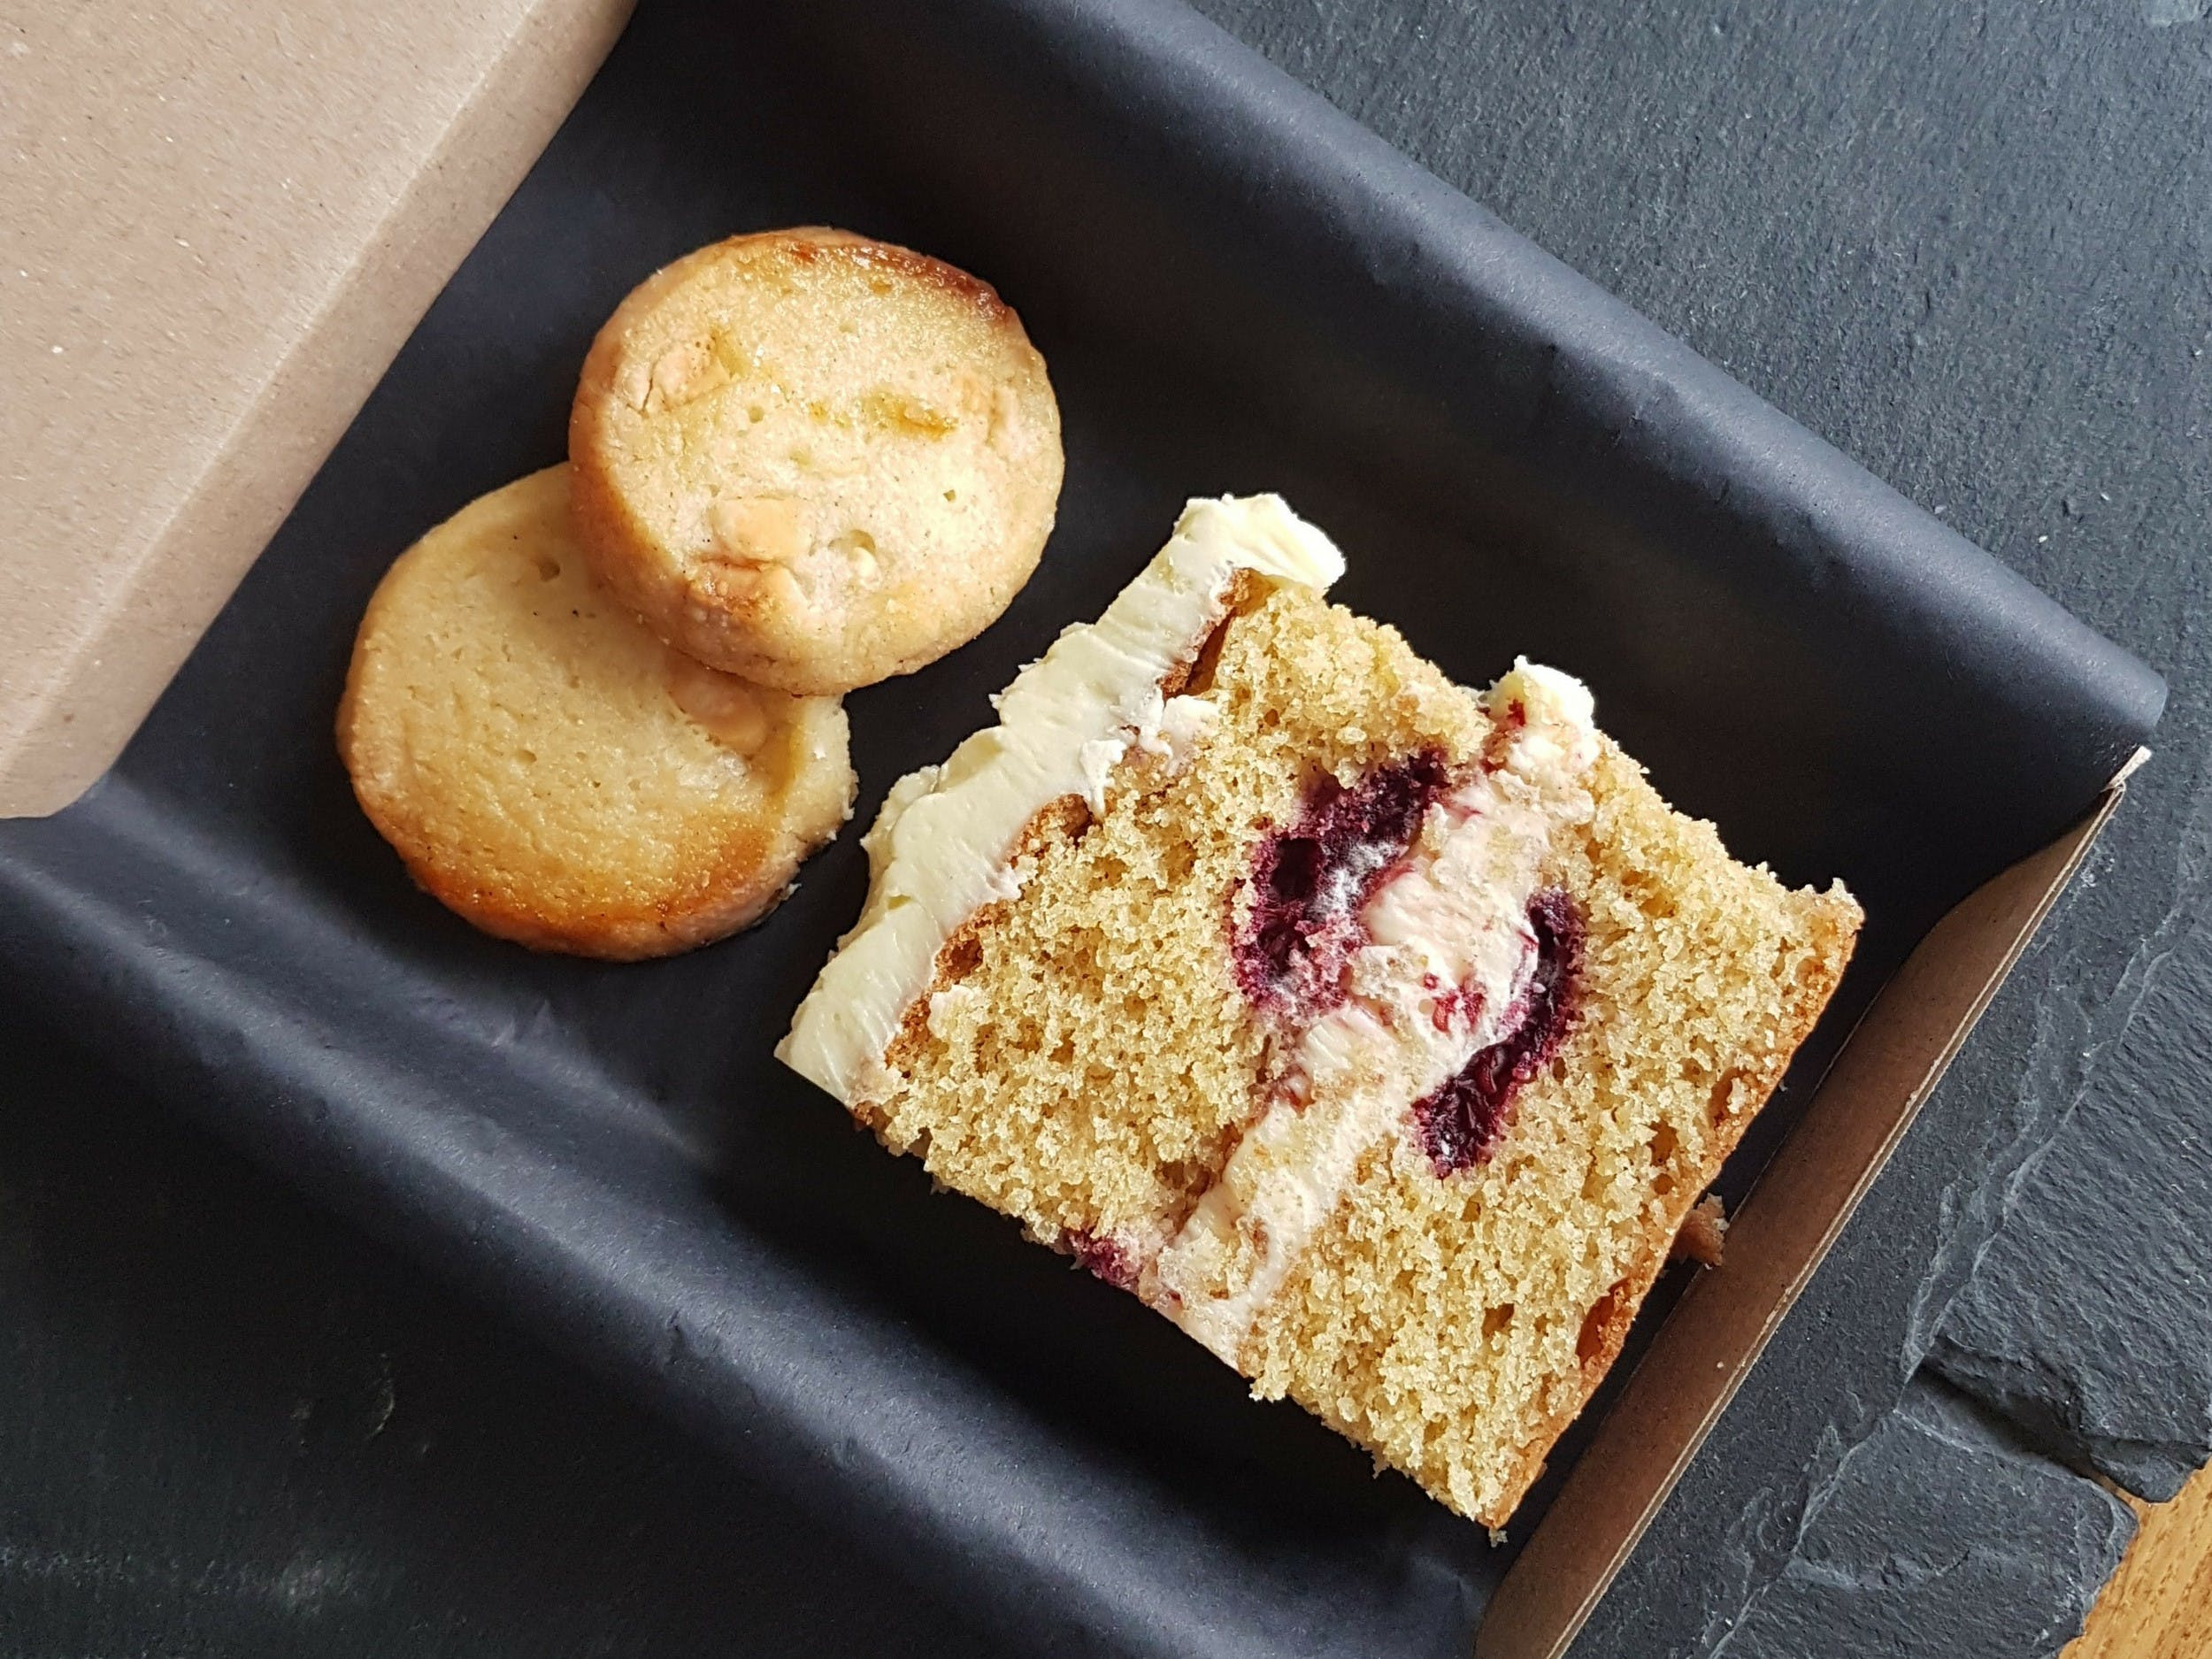 The Cake For One Box - The Cake Tasting Club